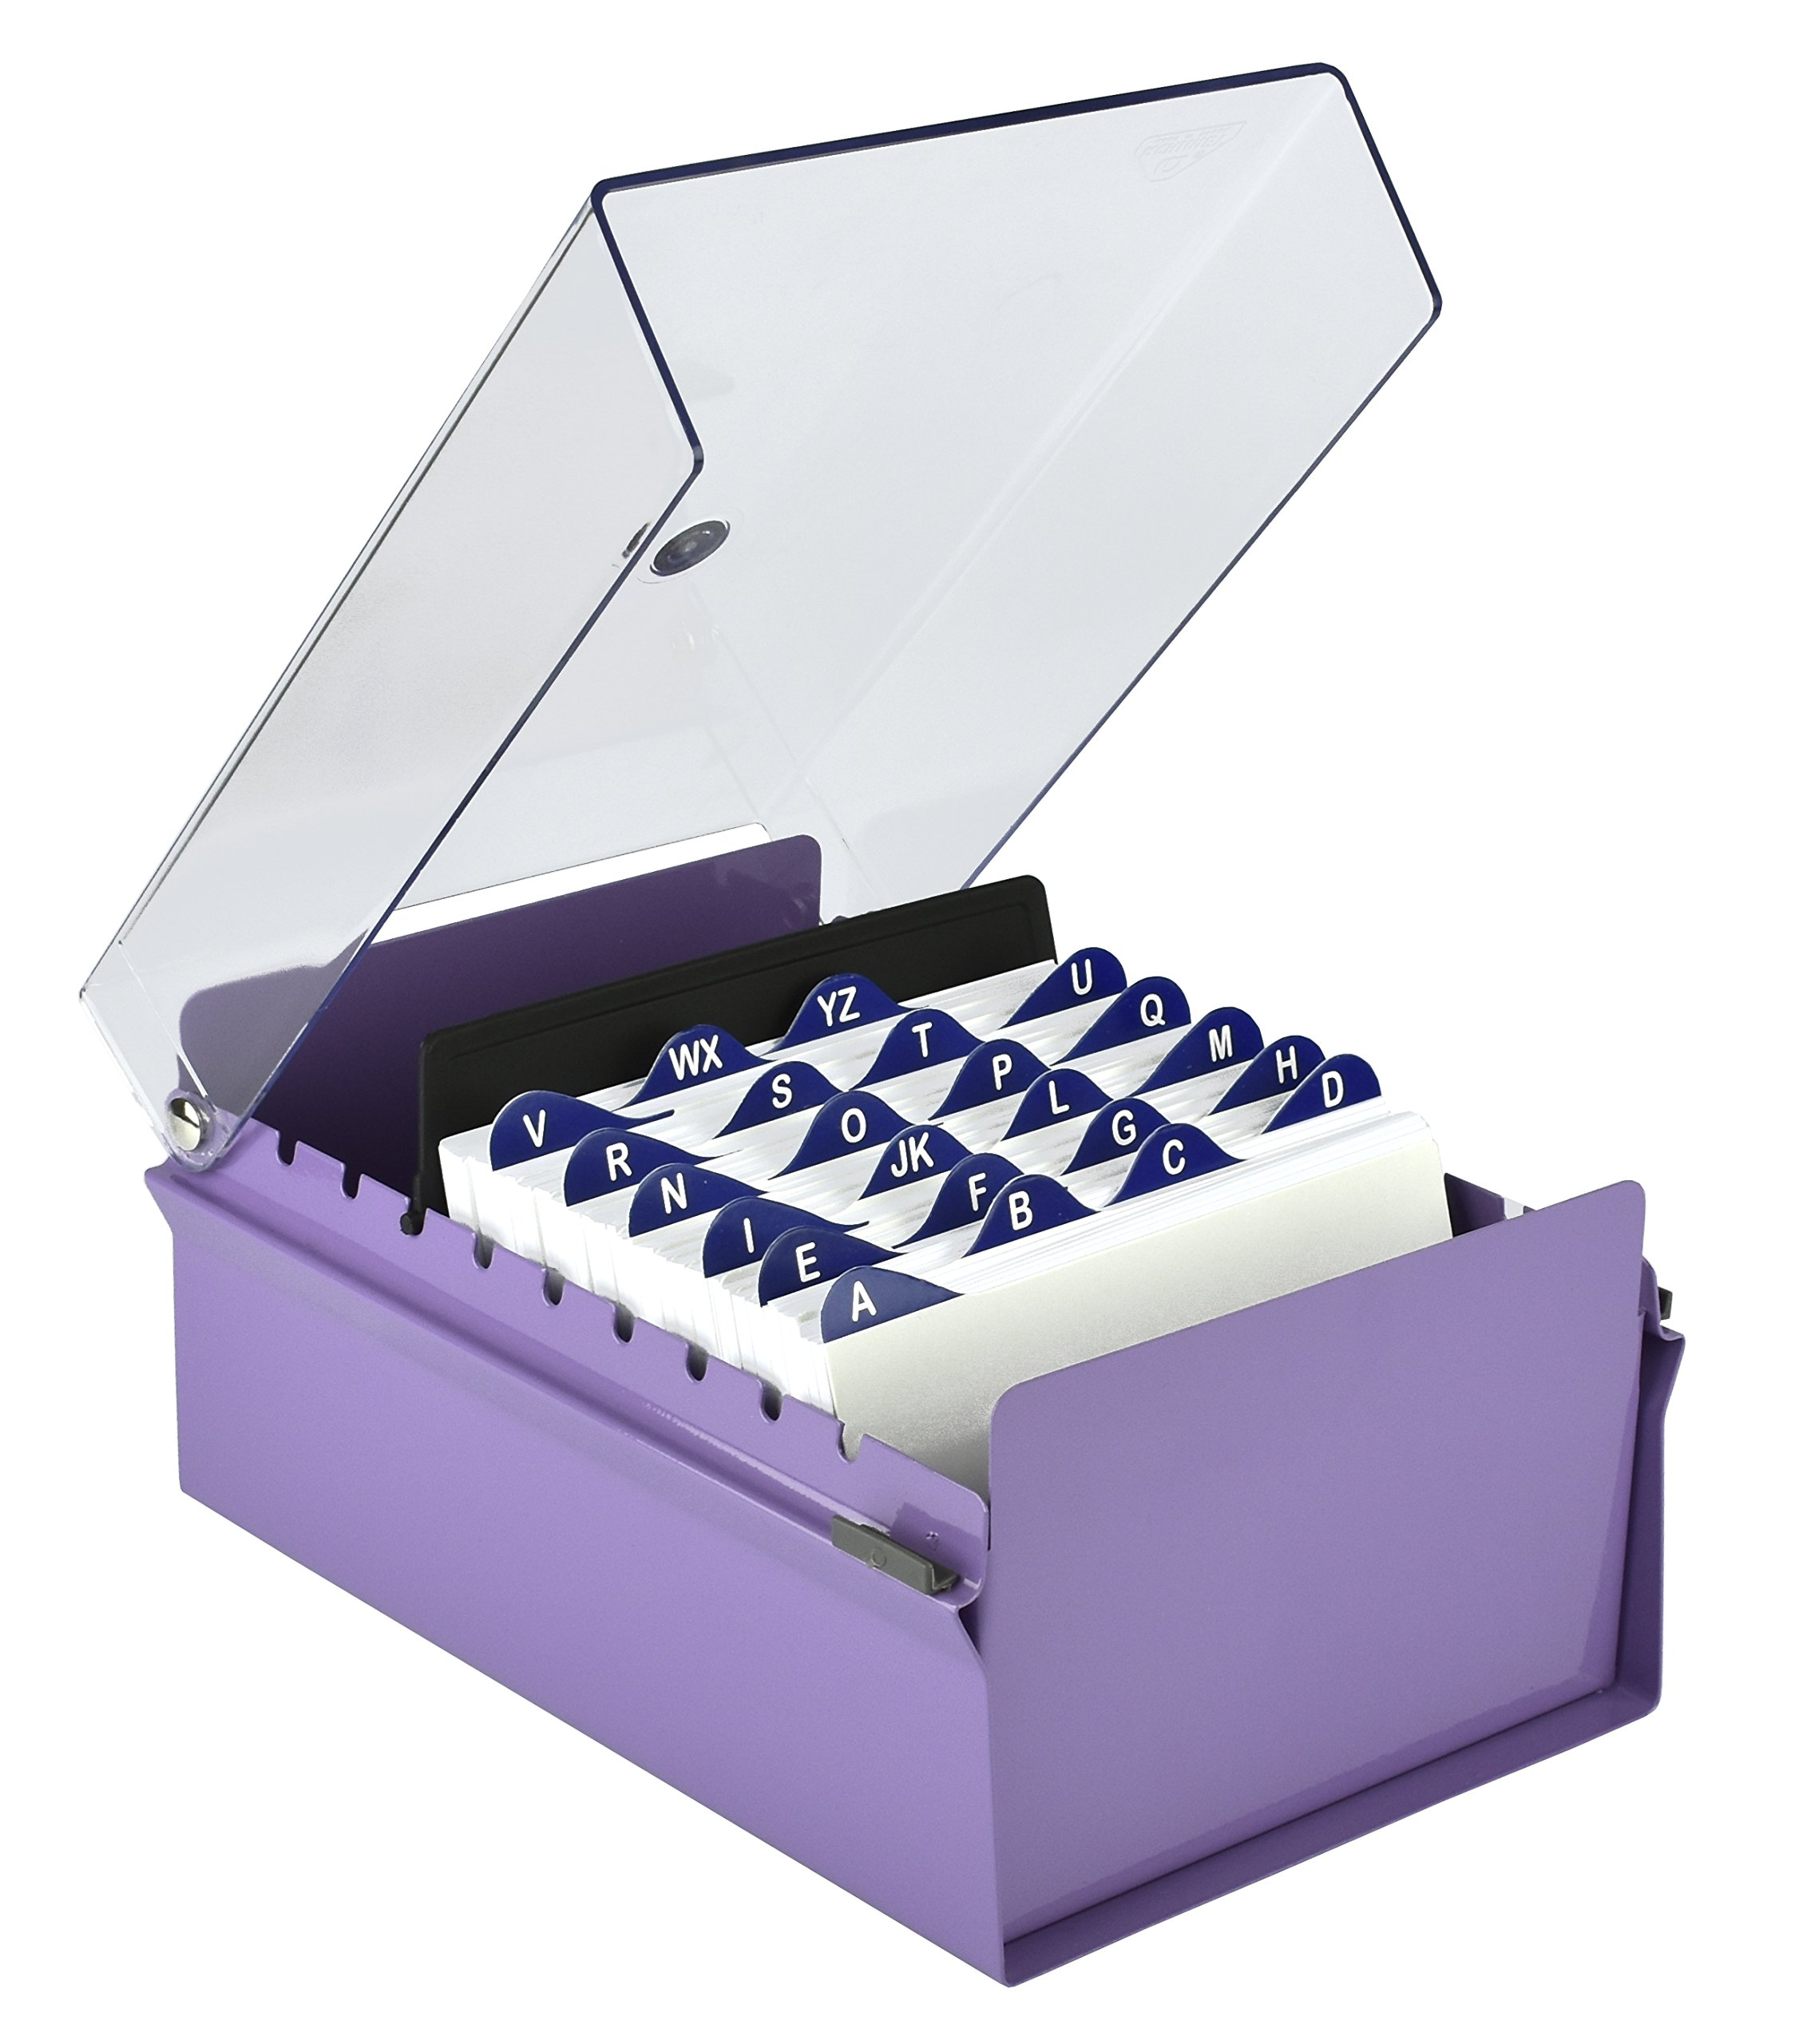 Acrimet 4 X 6 Card File Holder Organizer Metal Base Heavy Duty (Purple Color with Crystal Plastic Lid Cover)